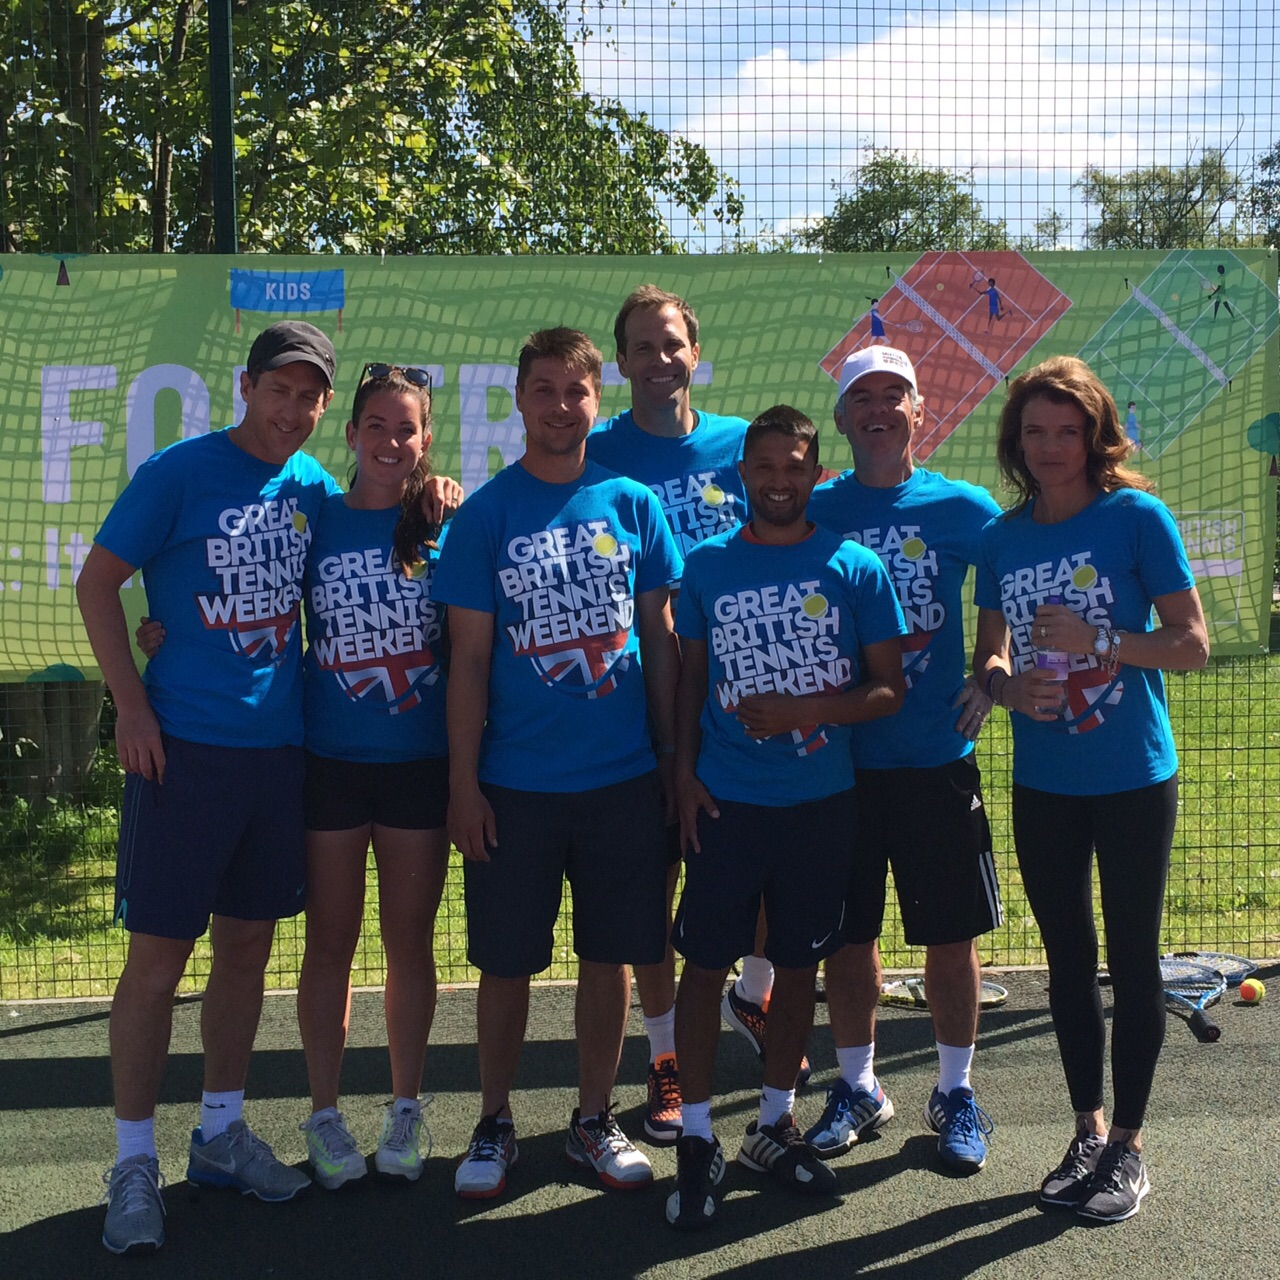 Myself and the Clapham team at the LTA Great British Tennis Weekend launch event with Greg Rusedski (Centre) and Annabel Croft (far right)